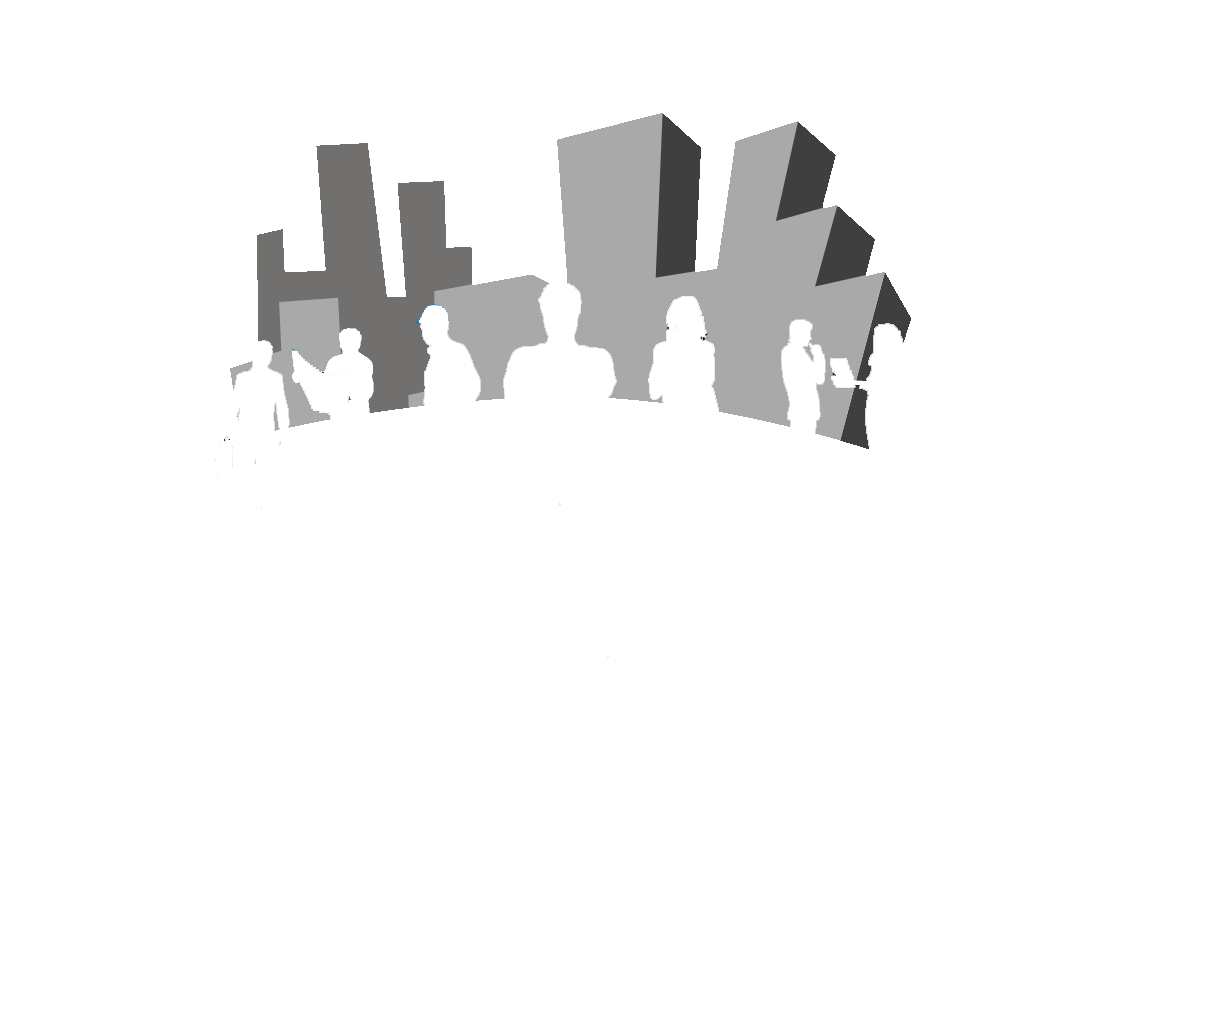 The Project Guys